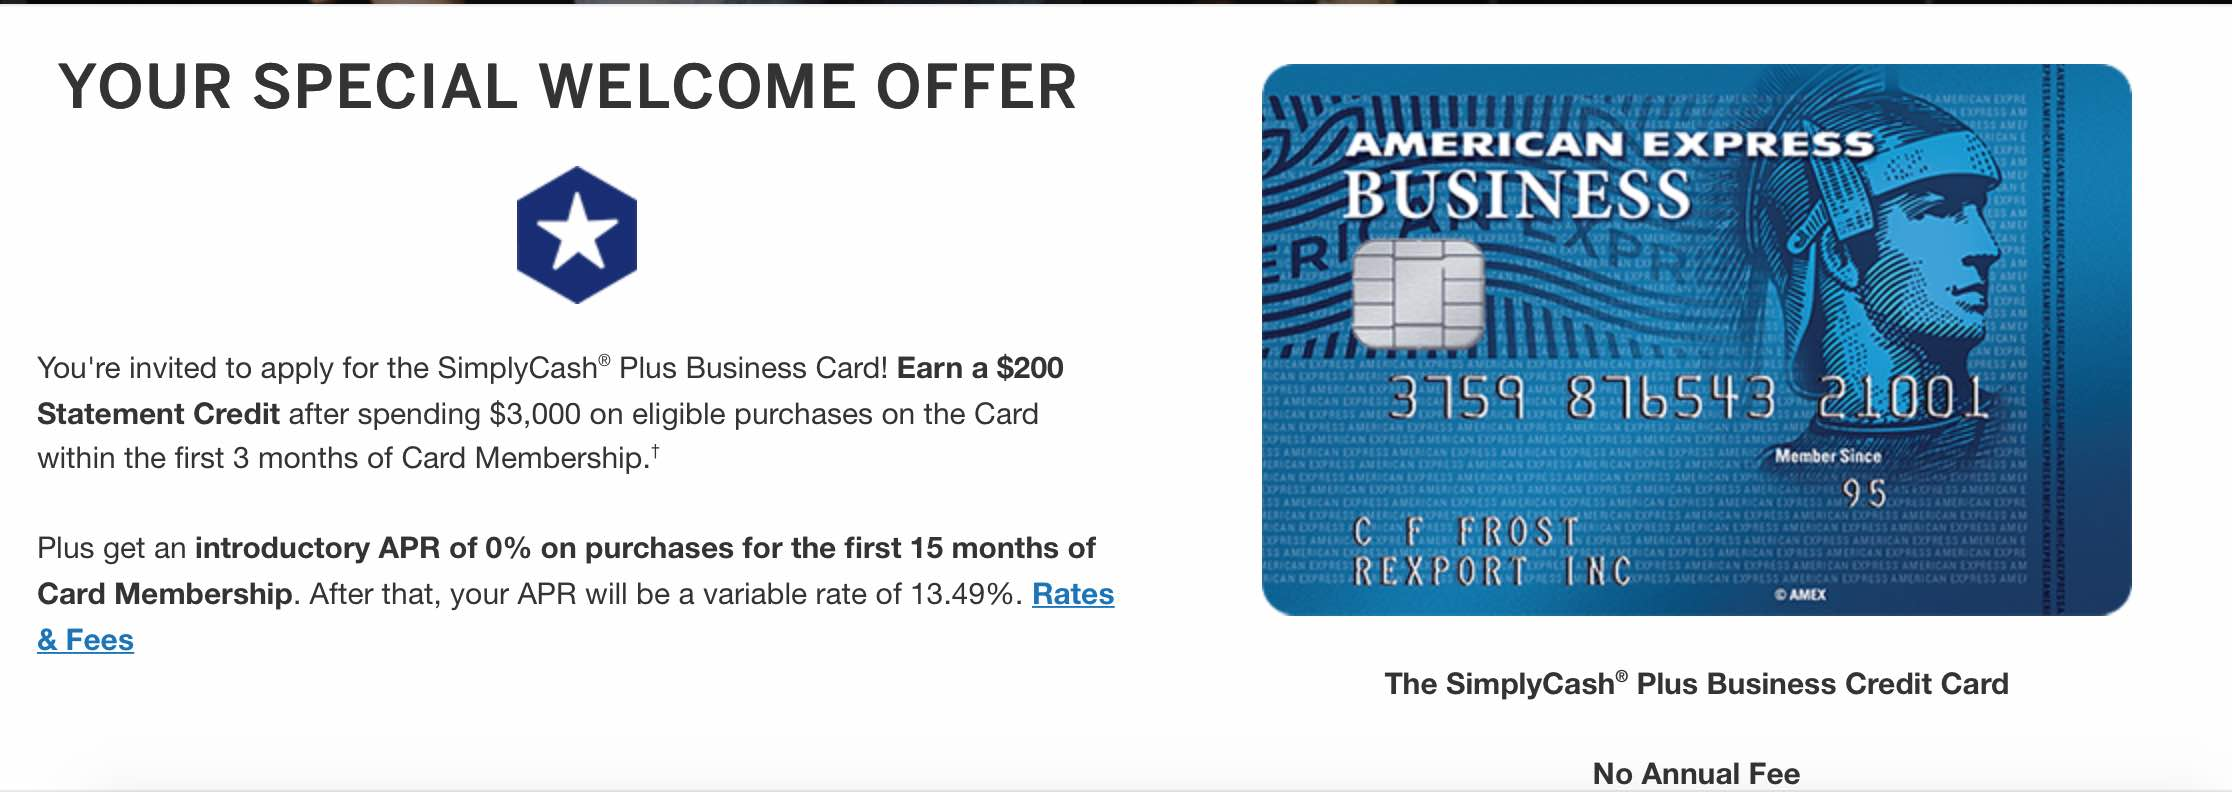 Amex personal account shows simplycash business ca myfico amex personal account shows simplycash business ca myfico forums 5177159 colourmoves